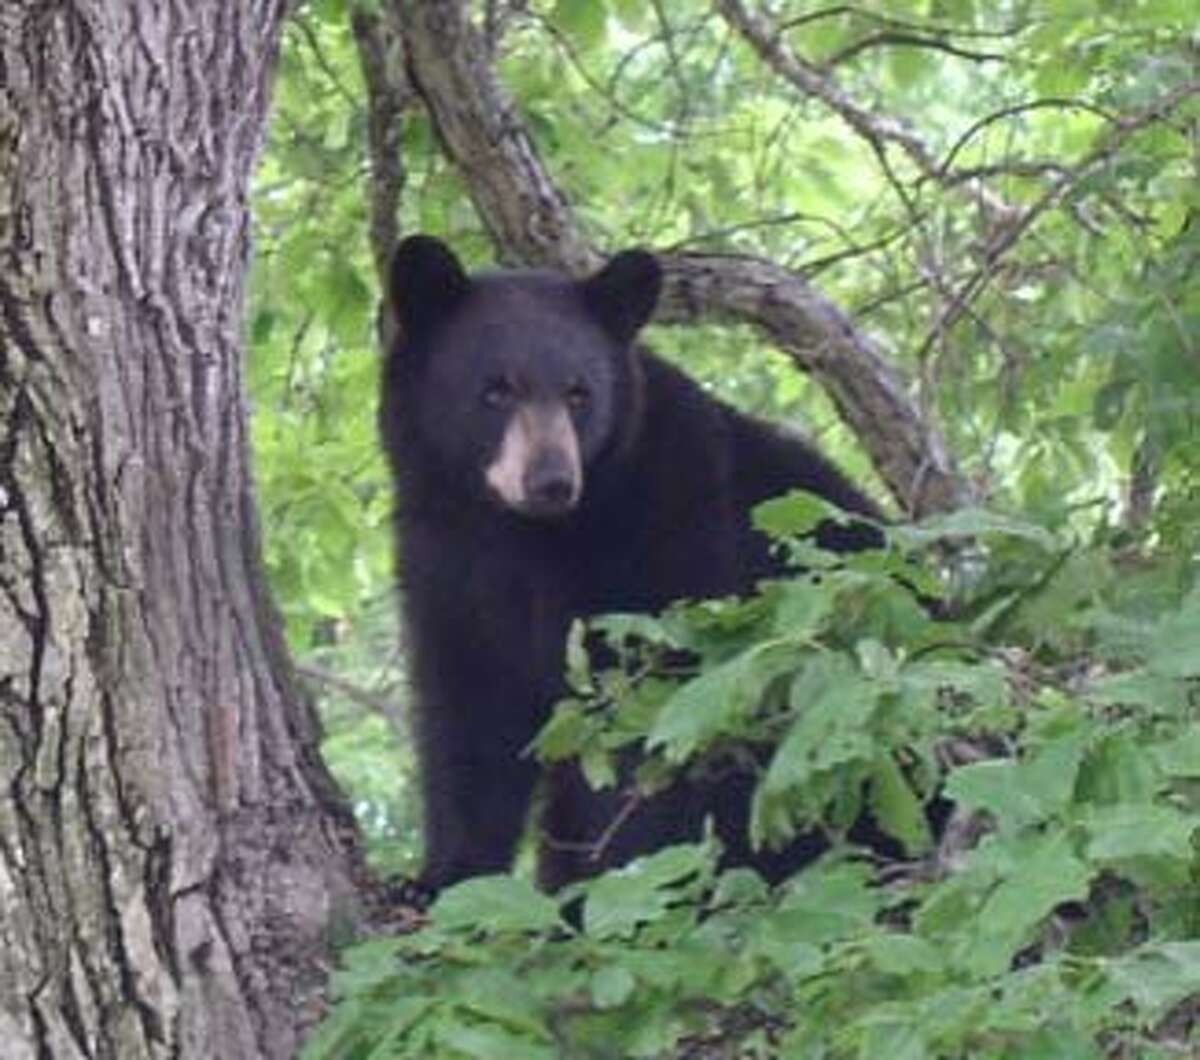 A black bear was spotted roaming the streets of Kings Beach early Wednesday morning.